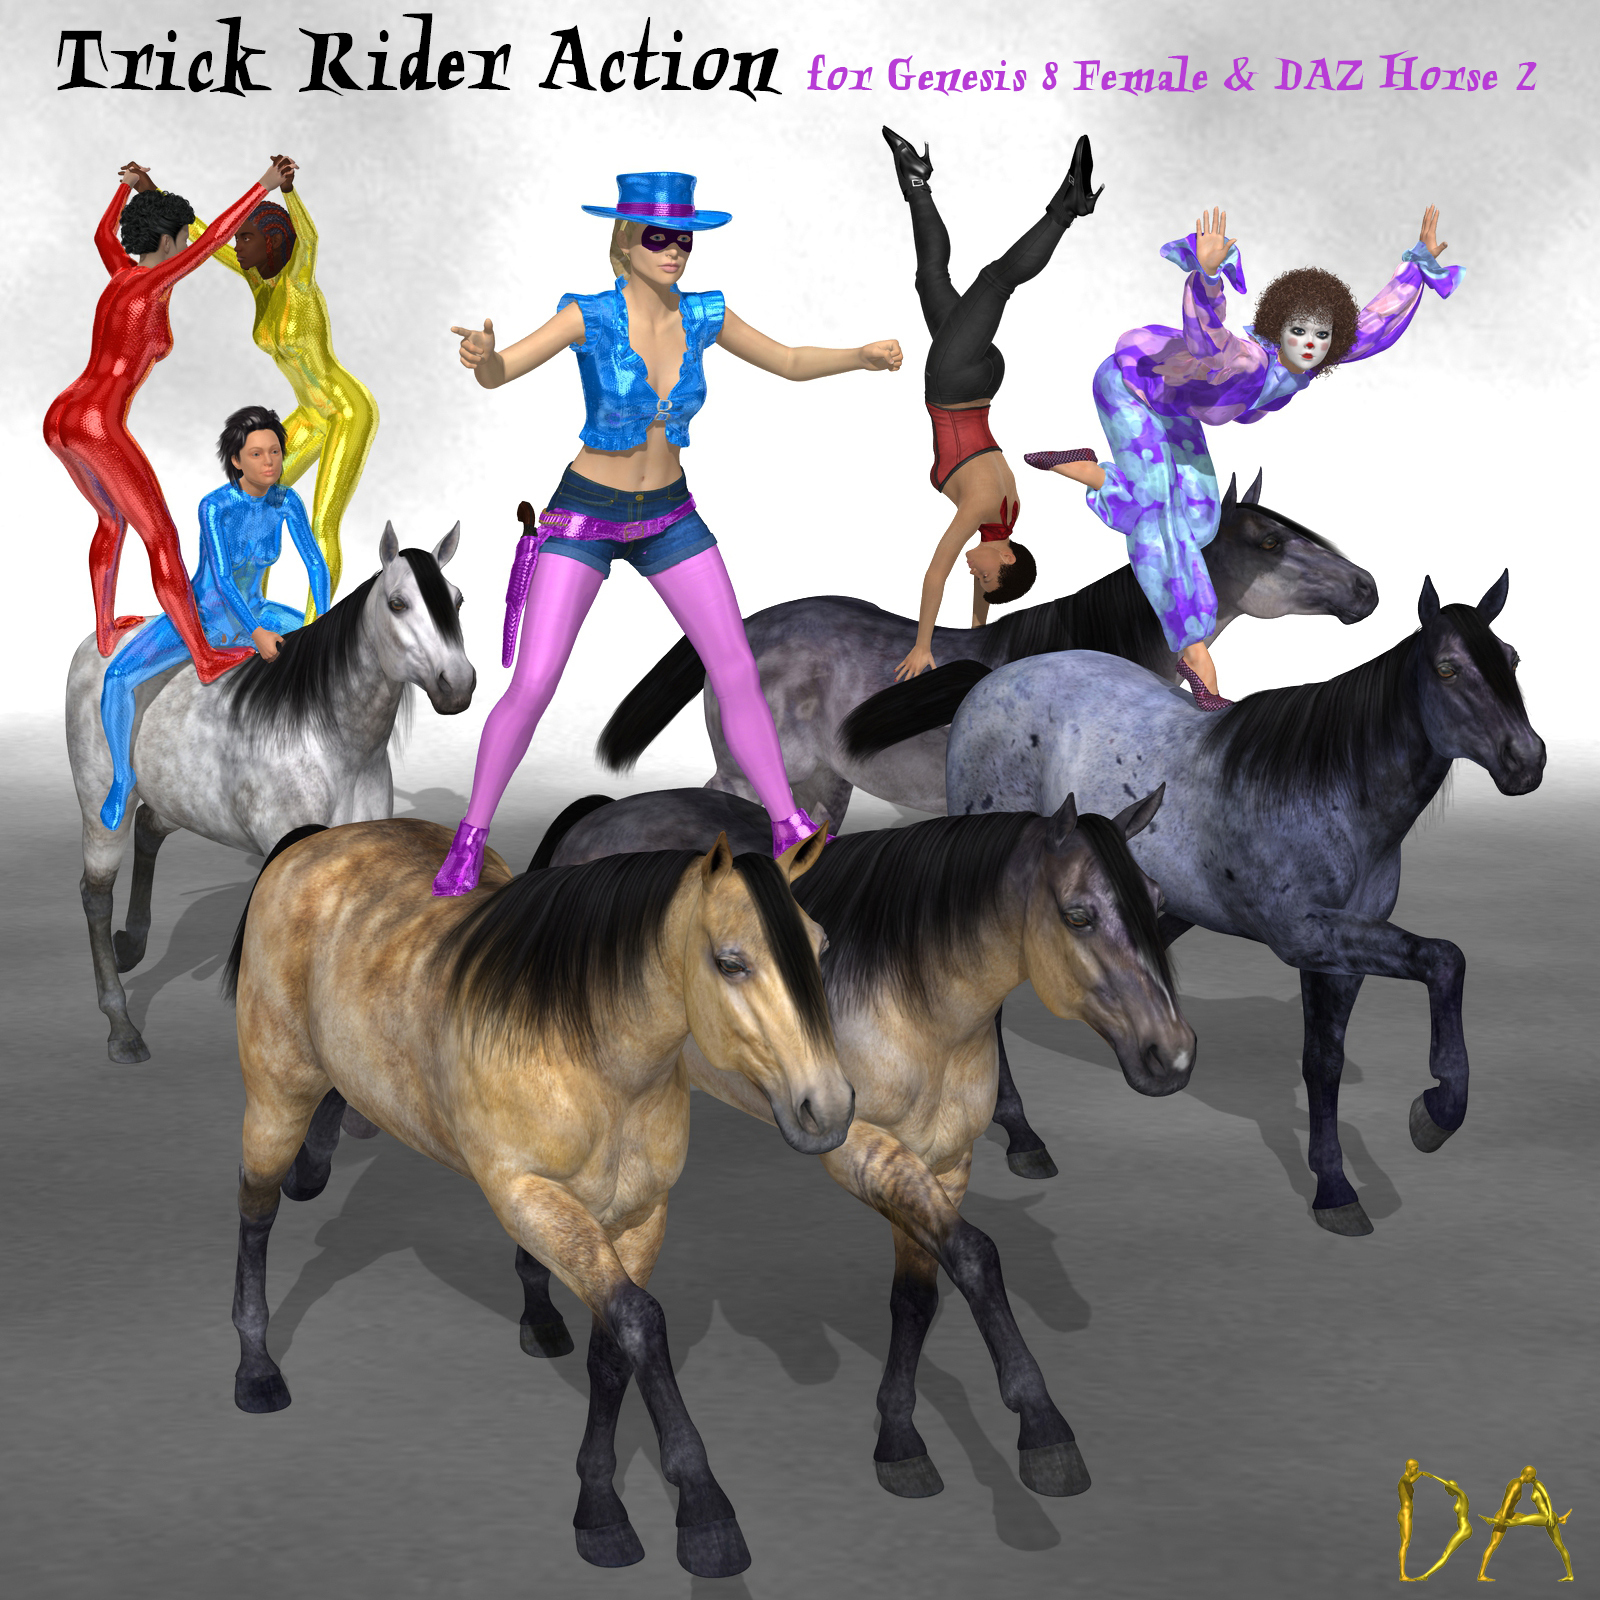 Trick Rider Action for G8F and DAZ Horse 2